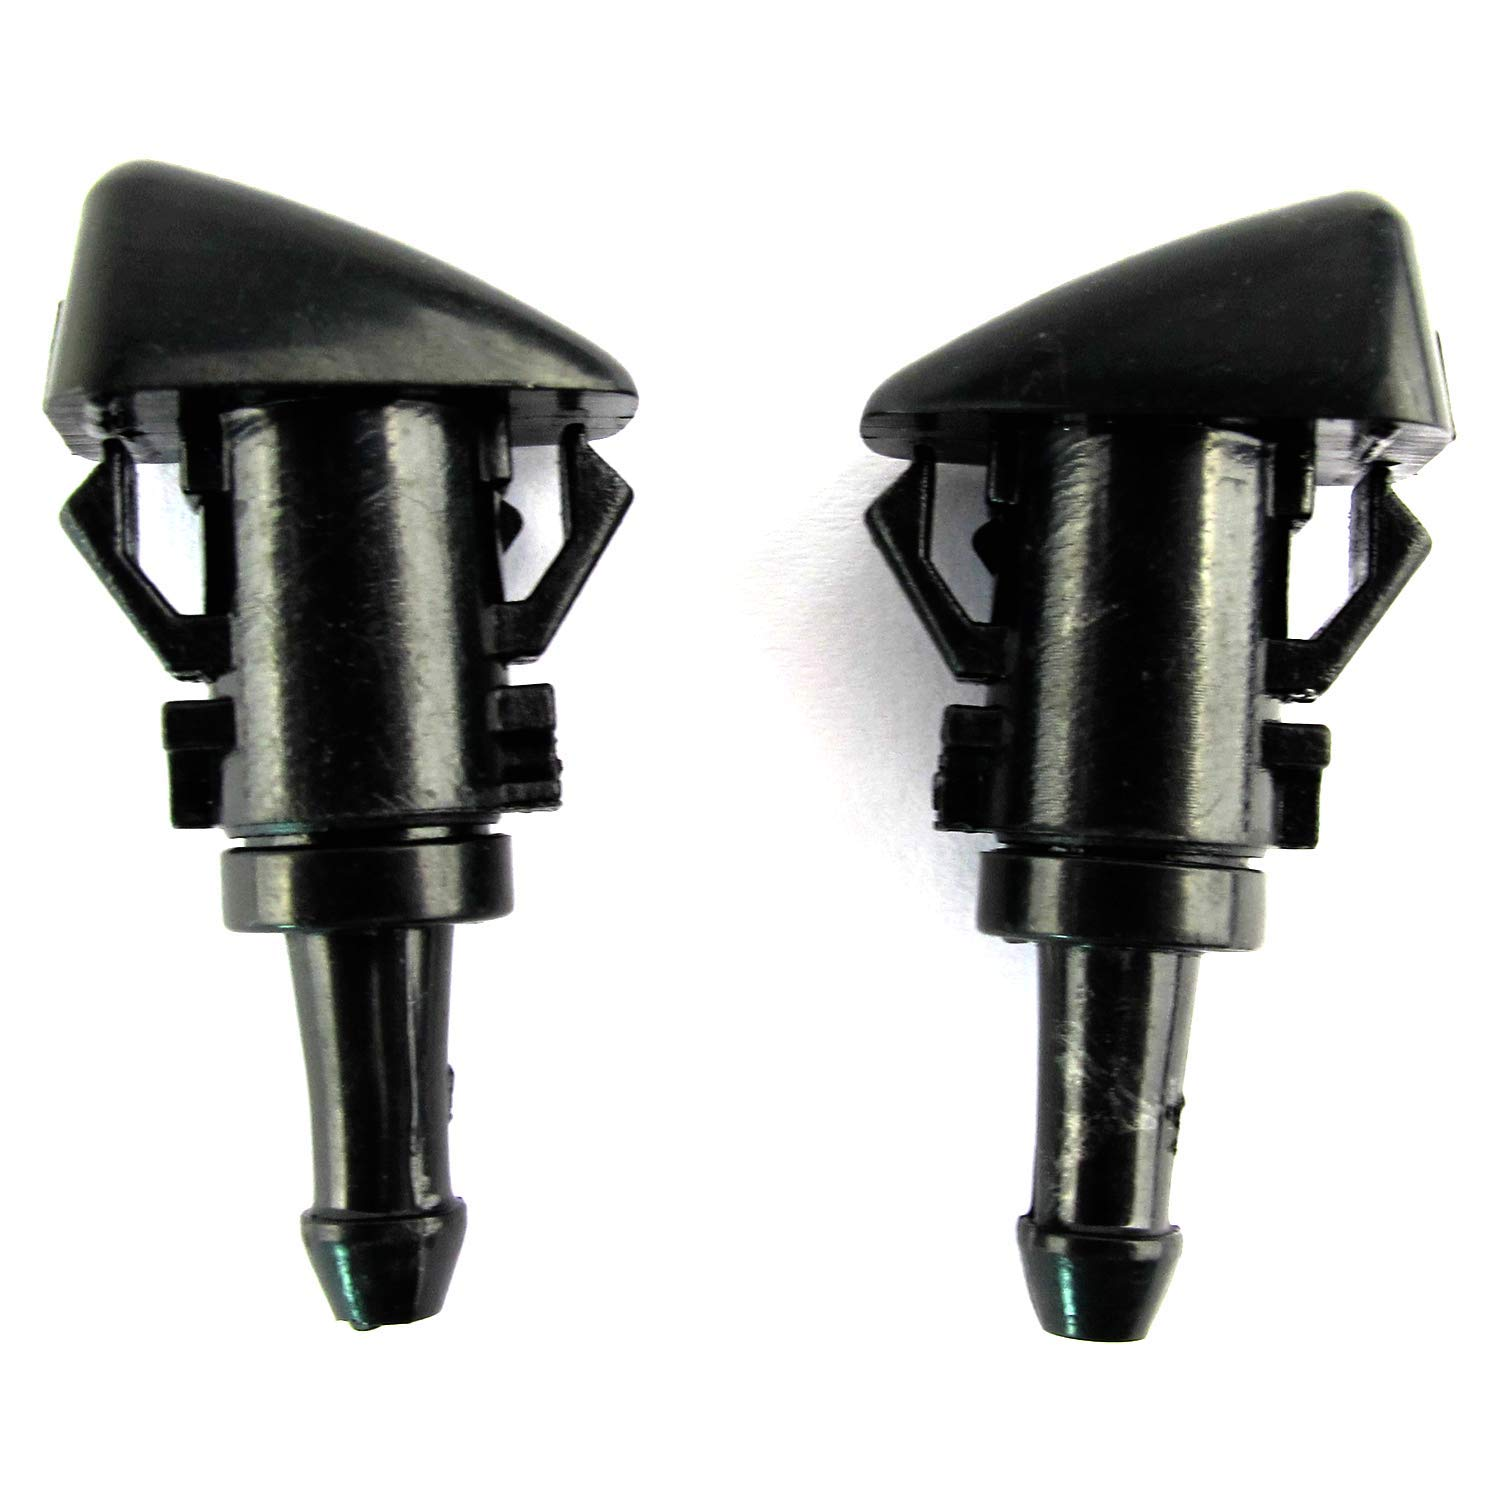 Diking 1 Pair Replacement Windshield Washer Nozzle Kit for Chrysler 300 Dodge Ram 1500 2500 3500